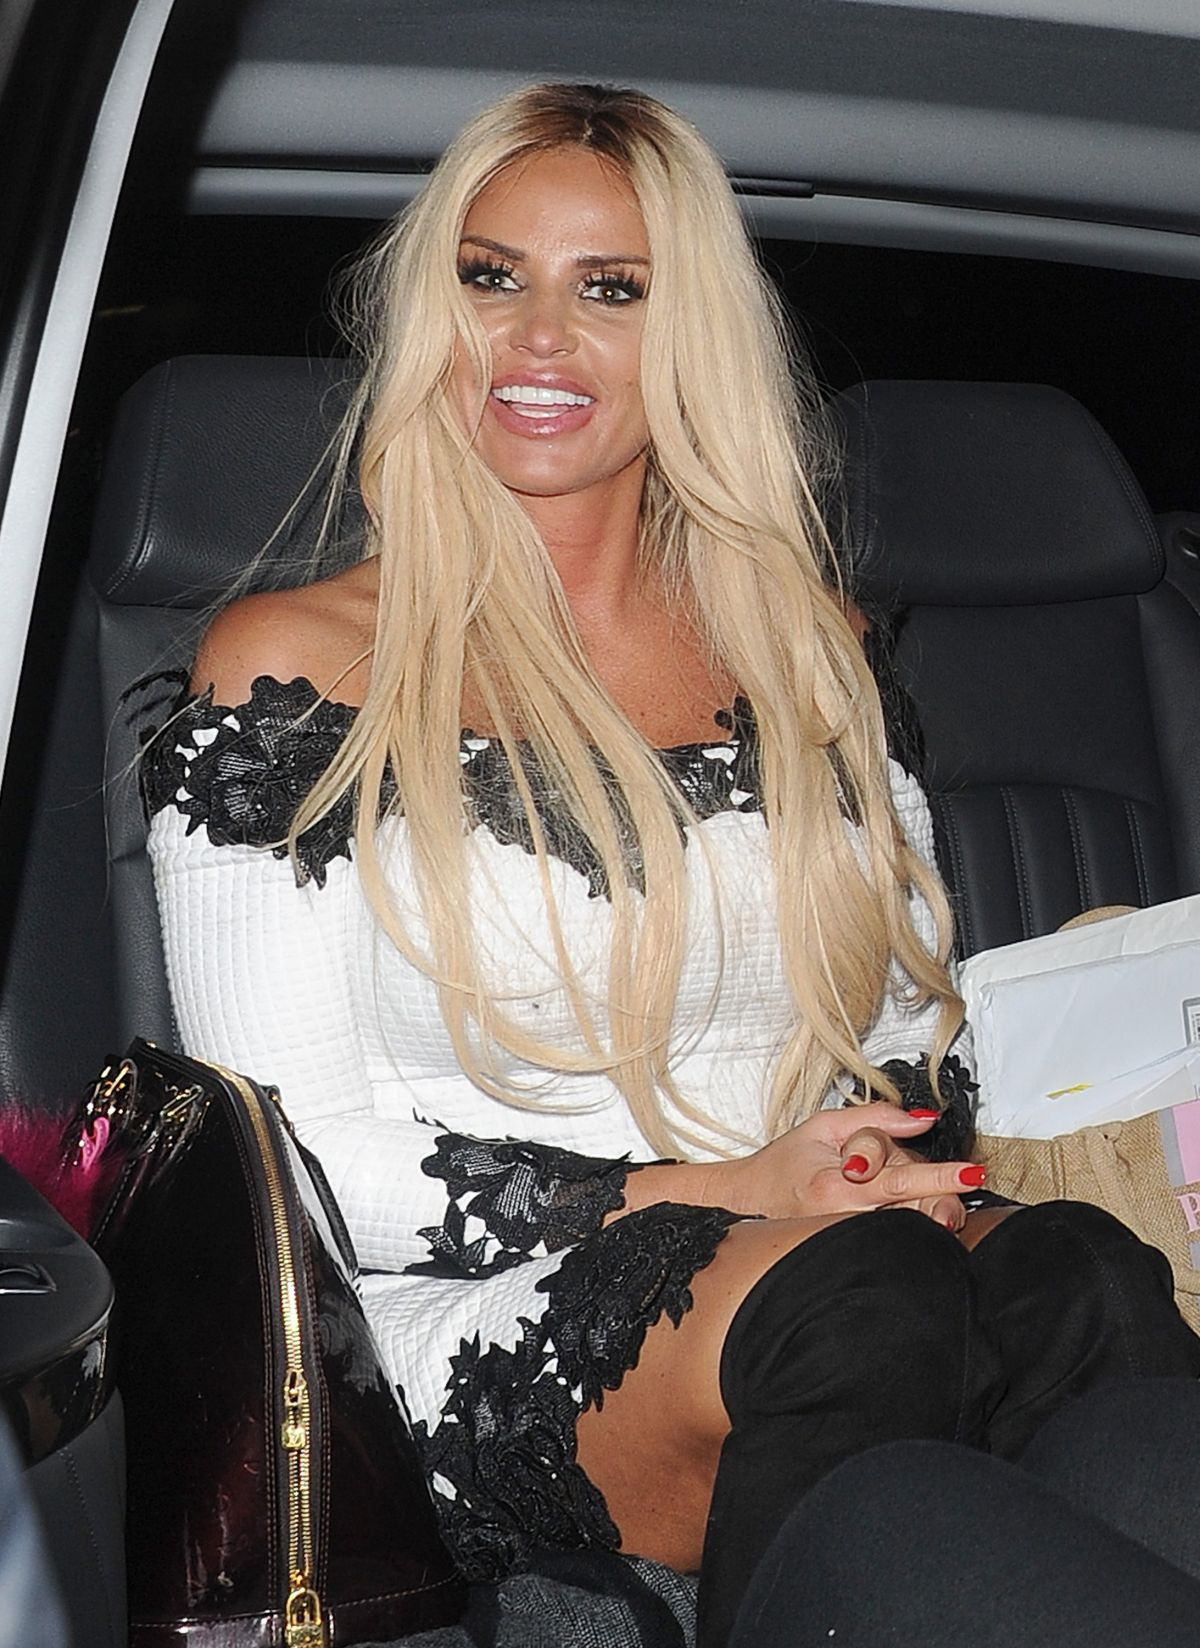 Katie Price Out for the evening in London   katie-price-out-for-the-evening-in-london_19